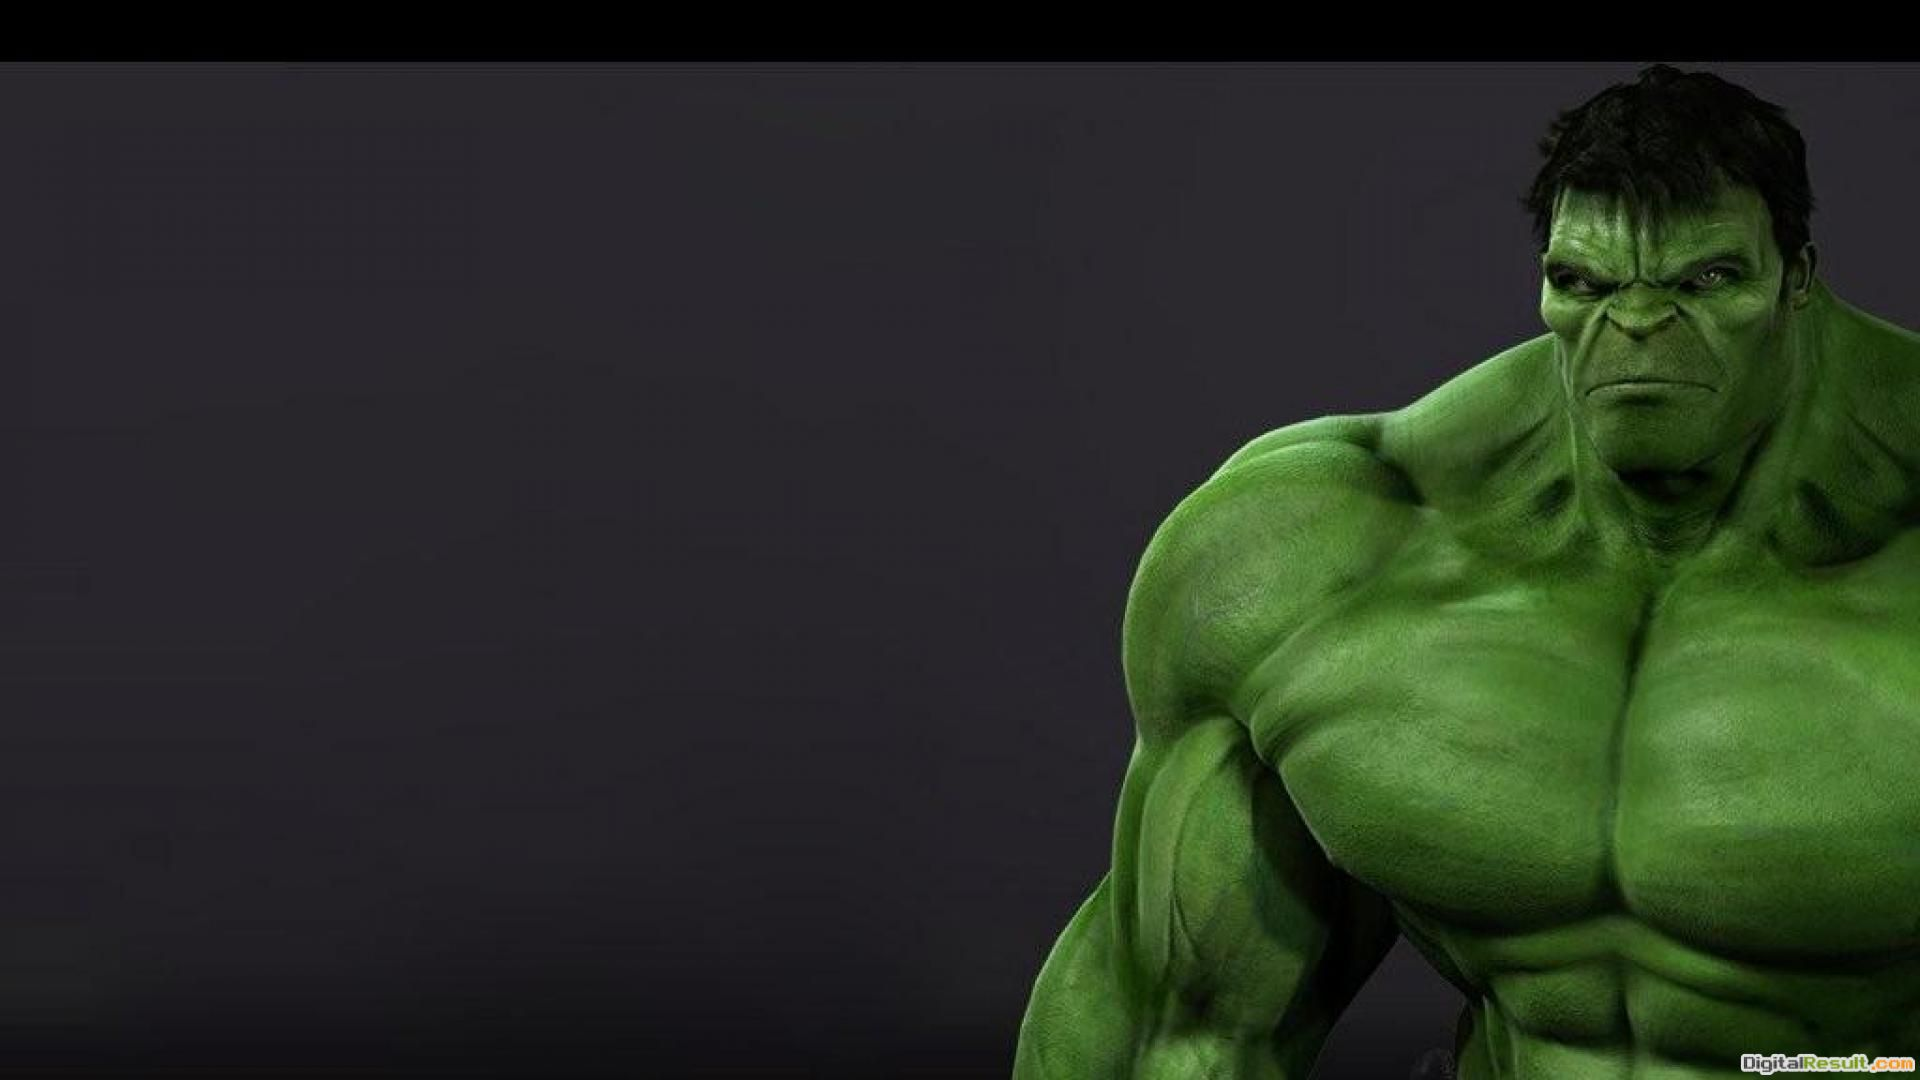 Hulk HD Wallpapers, Desktop Backgrounds, Mobile Wallpapers | 1024x768 325